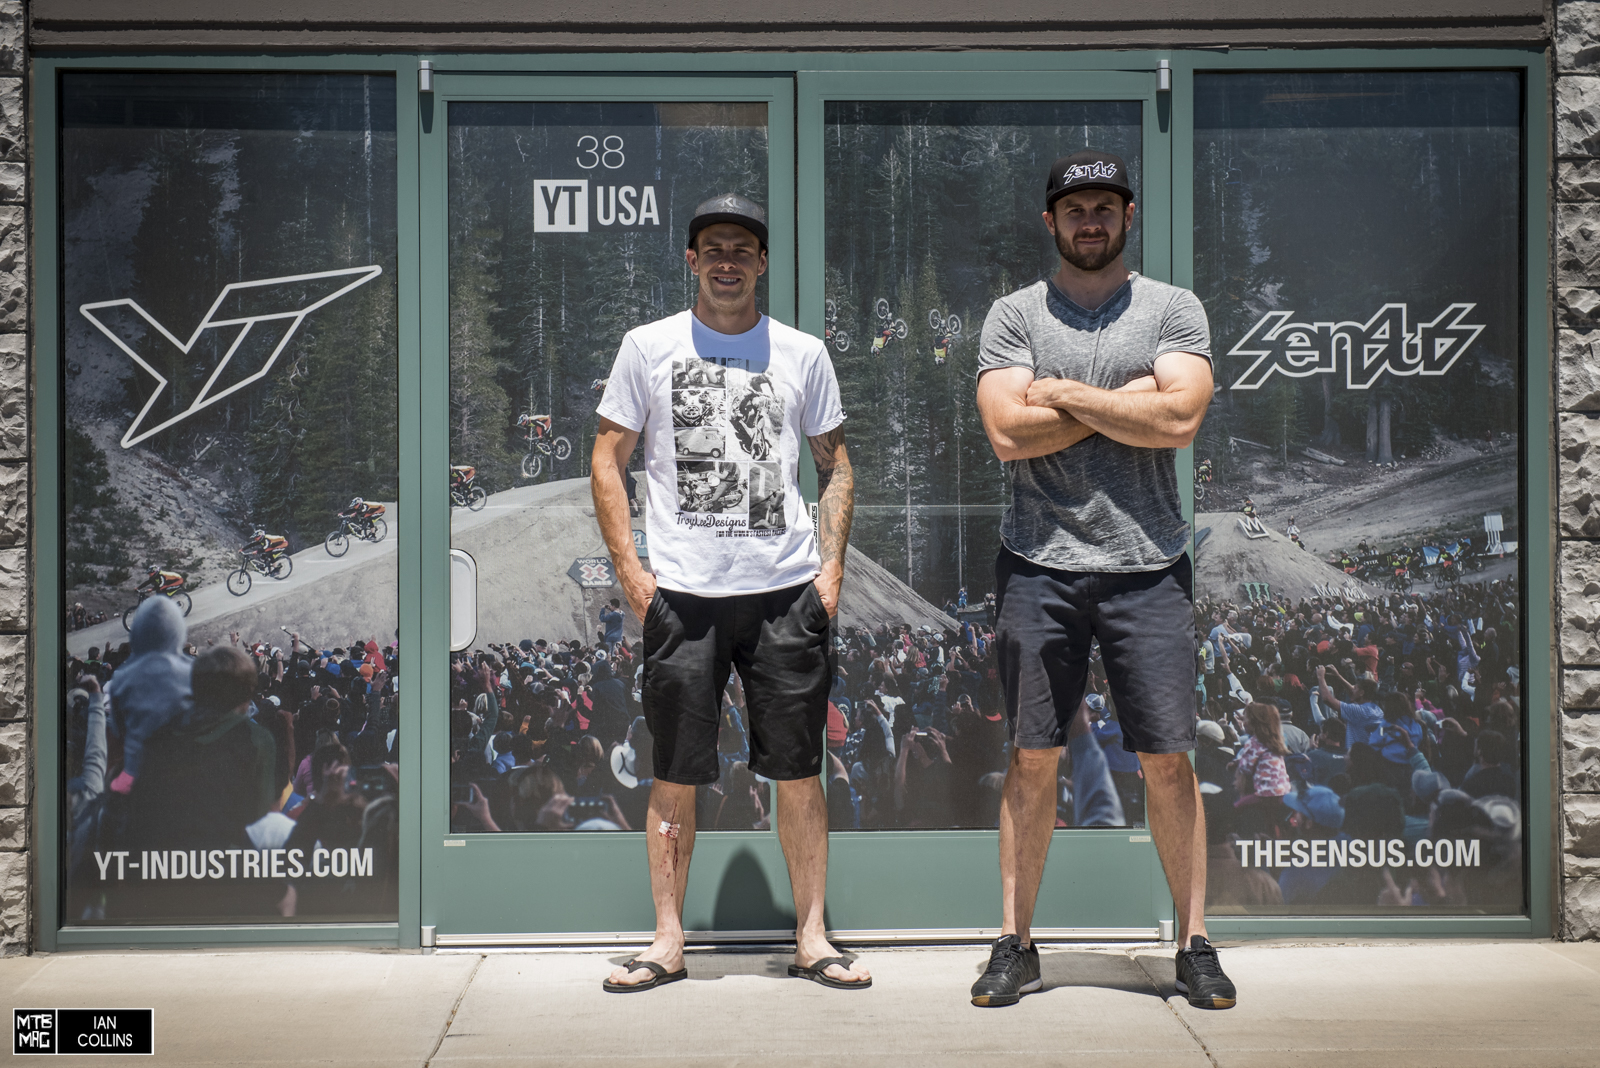 Welcome to Reno!  Take a look inside YT Industries USA and Sensus Grips with Cam and Howie Zink